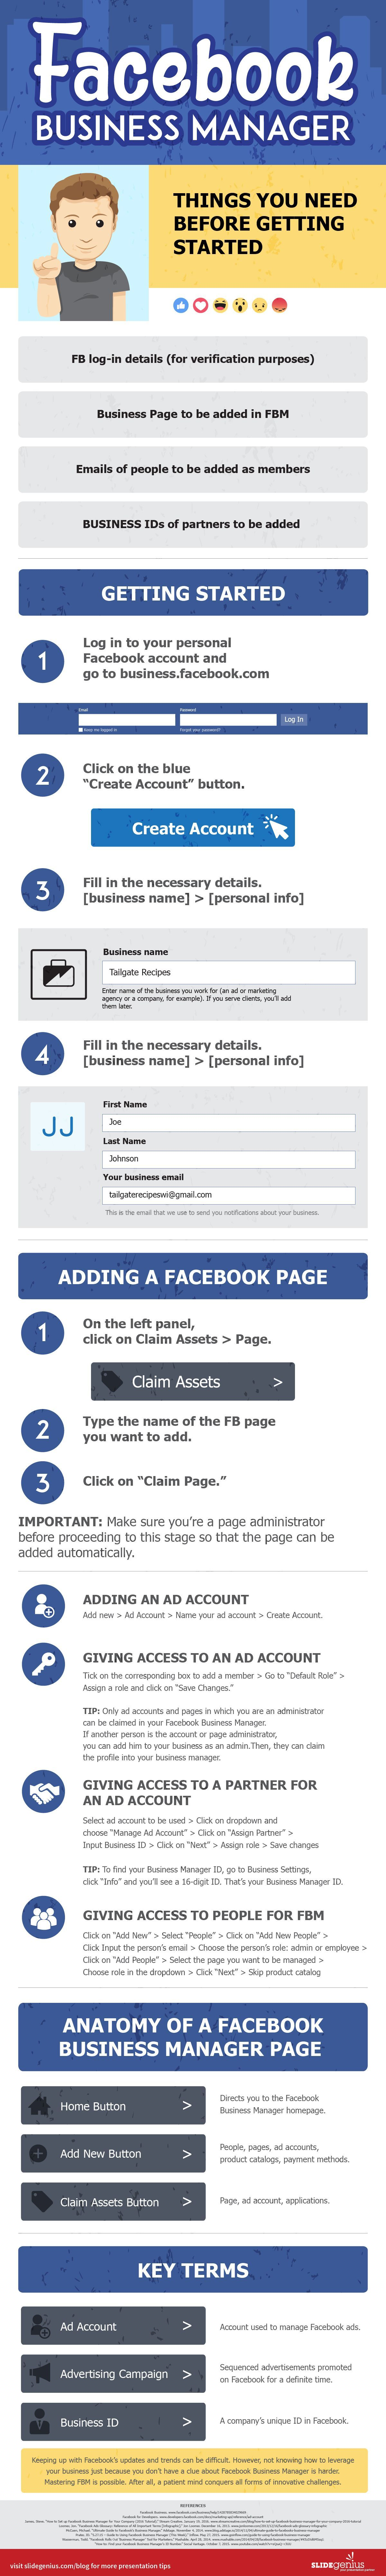 A Step-by-Step Guide to Facebook Business Manager - infographic ...